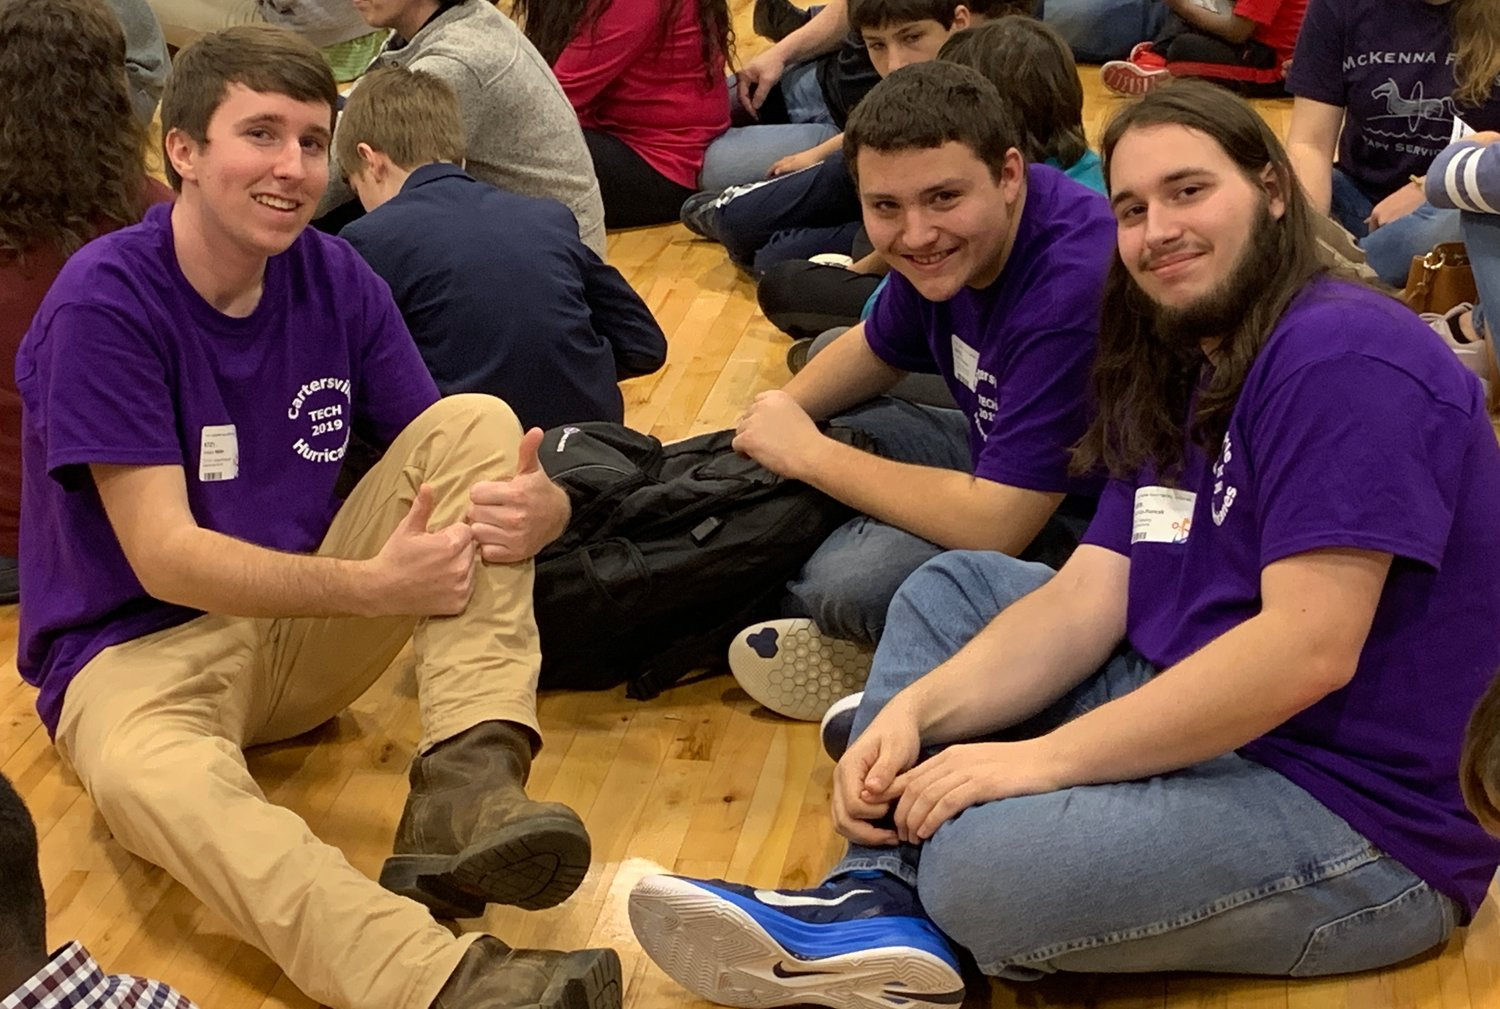 Cartersville High students, from left, Hayes Miller, Tyler Turner and Nicholas Francek were invited to compete at Saturday's Georgia Student Technology Competition after winning first place at the Northwest Regional Tech Competition in January.